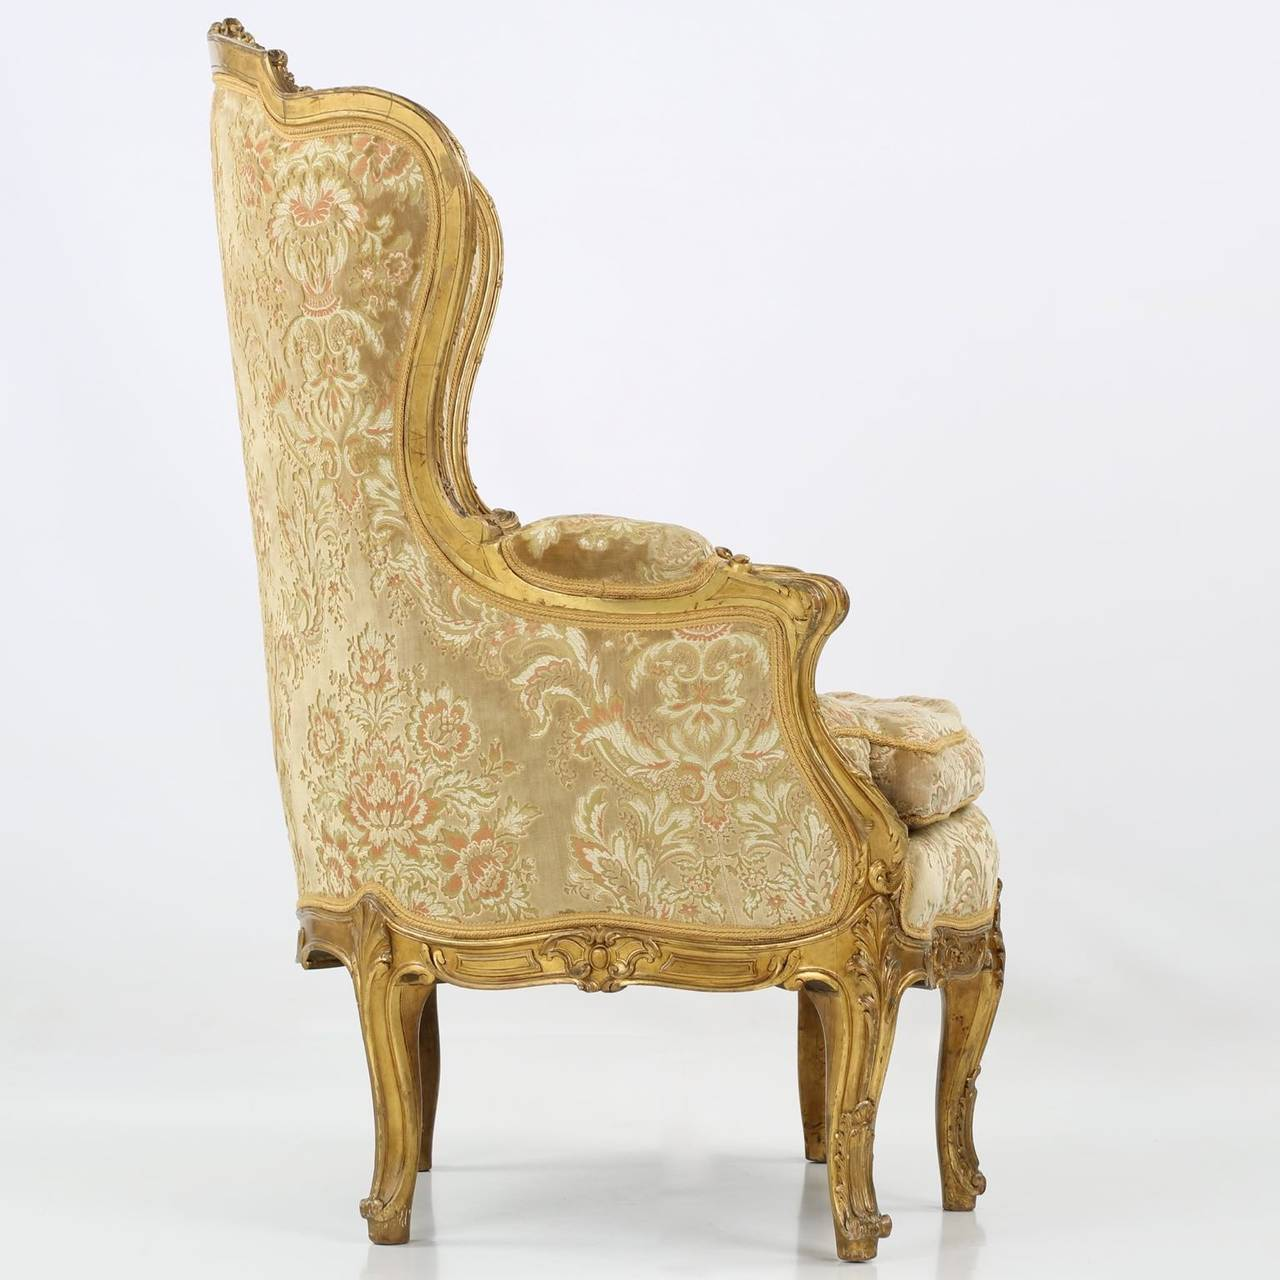 Antique bergere chair - Louis Xv Style Carved Giltwood Antique Bergere Armchair Circa 1870 3